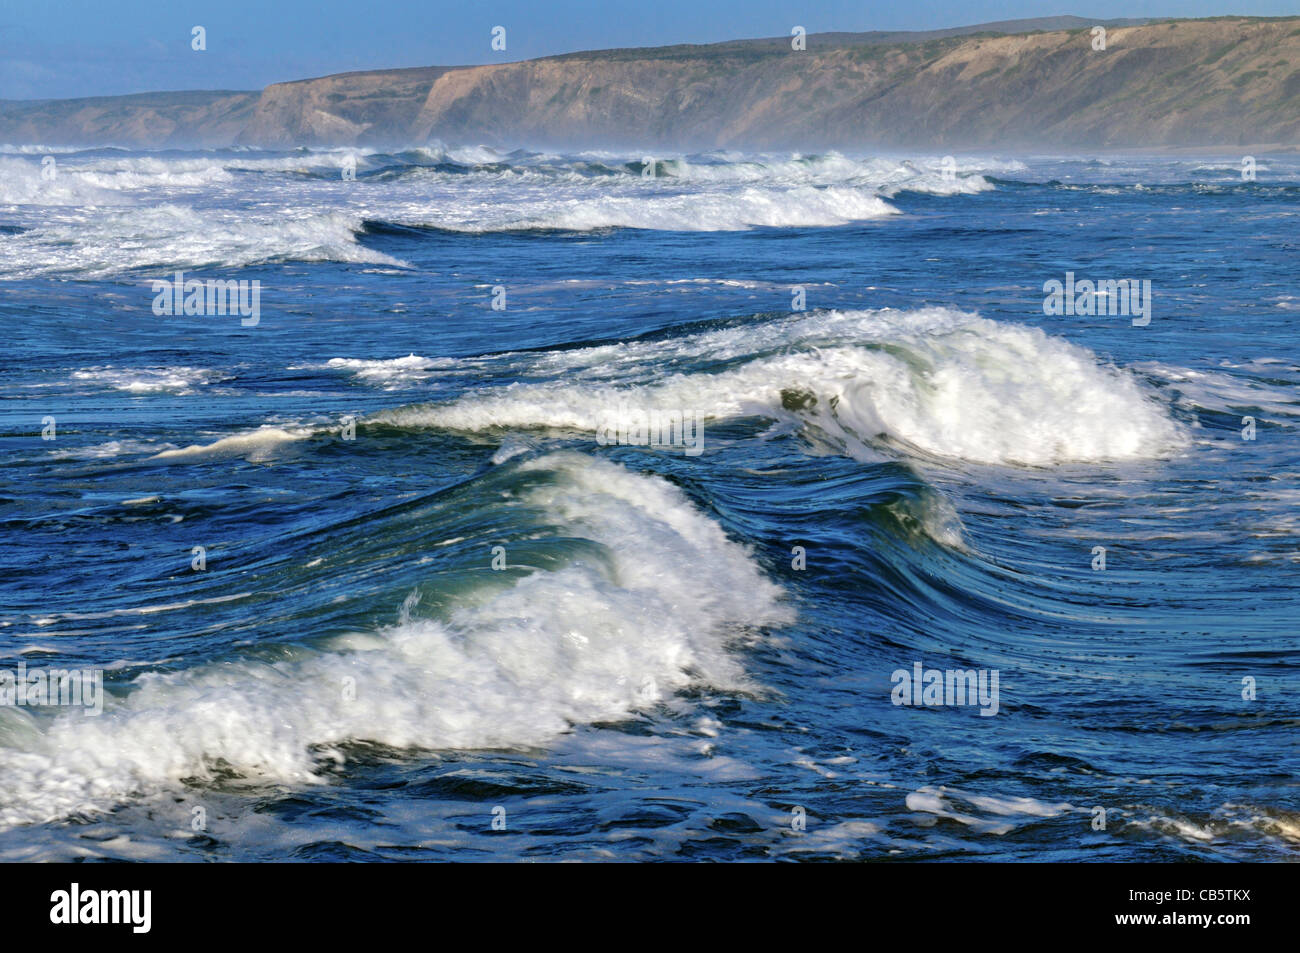 Portugal, Algarve: Waves at beach Praia da Bordeira - Stock Image